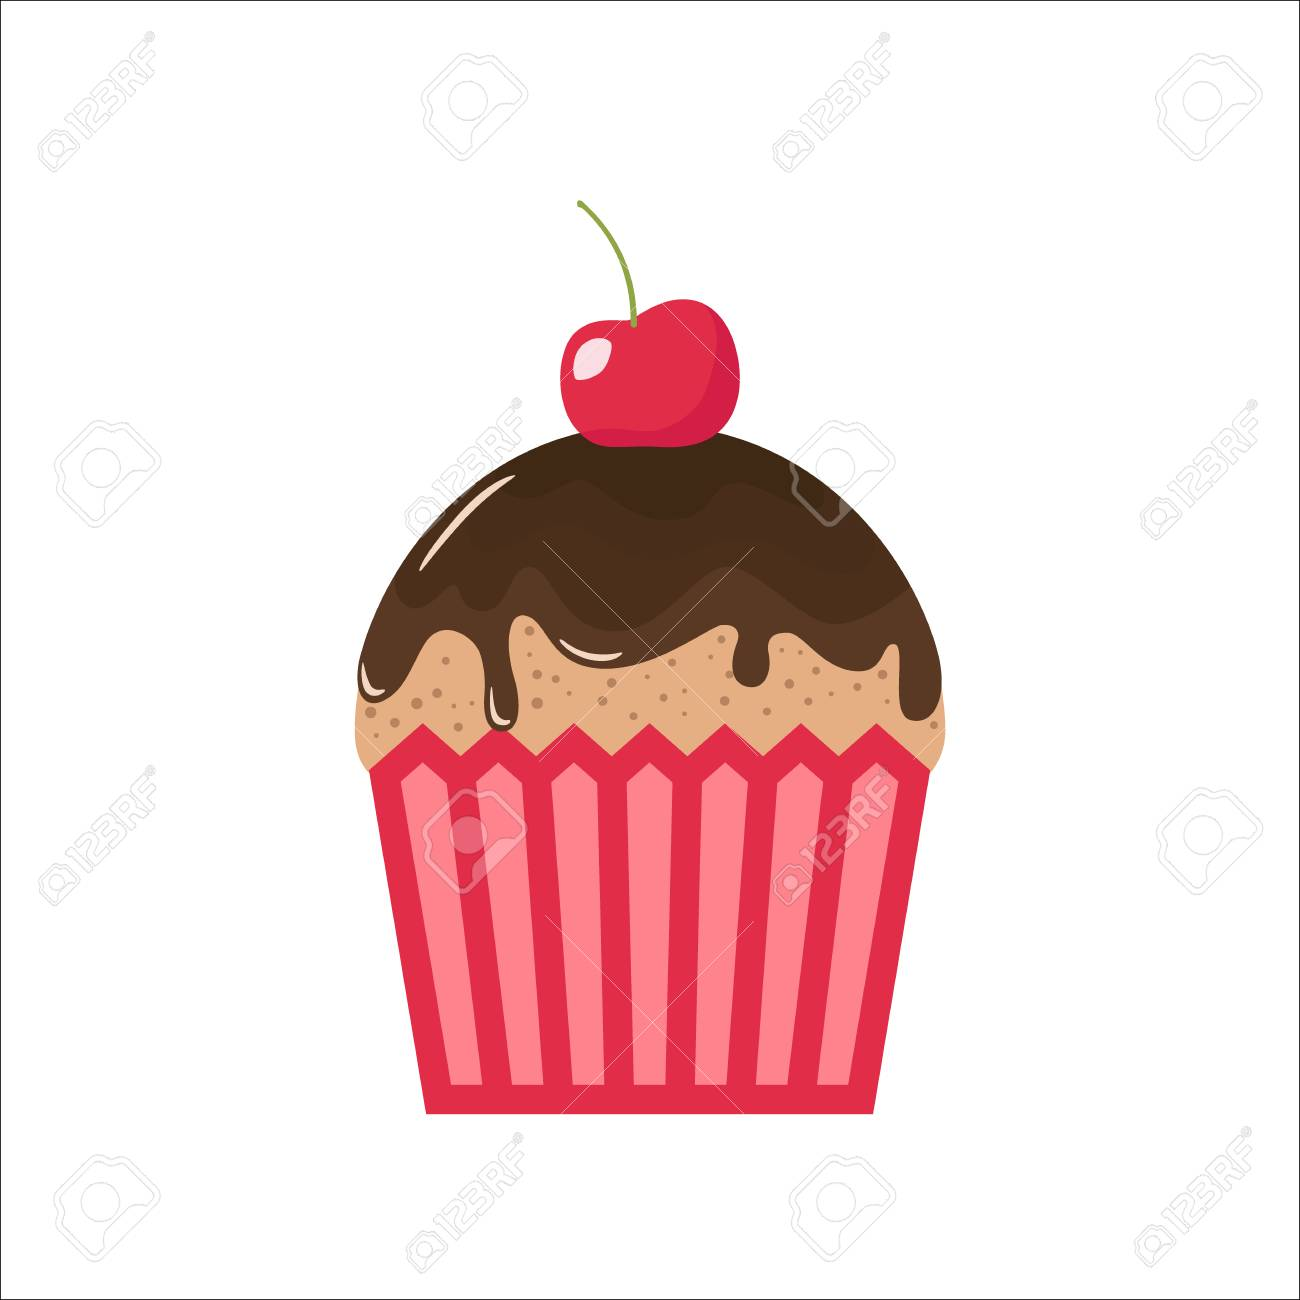 hight resolution of cartoon chocolate cupcake with cherry on top clipart cupcake cartoon chocolate topping and cherry